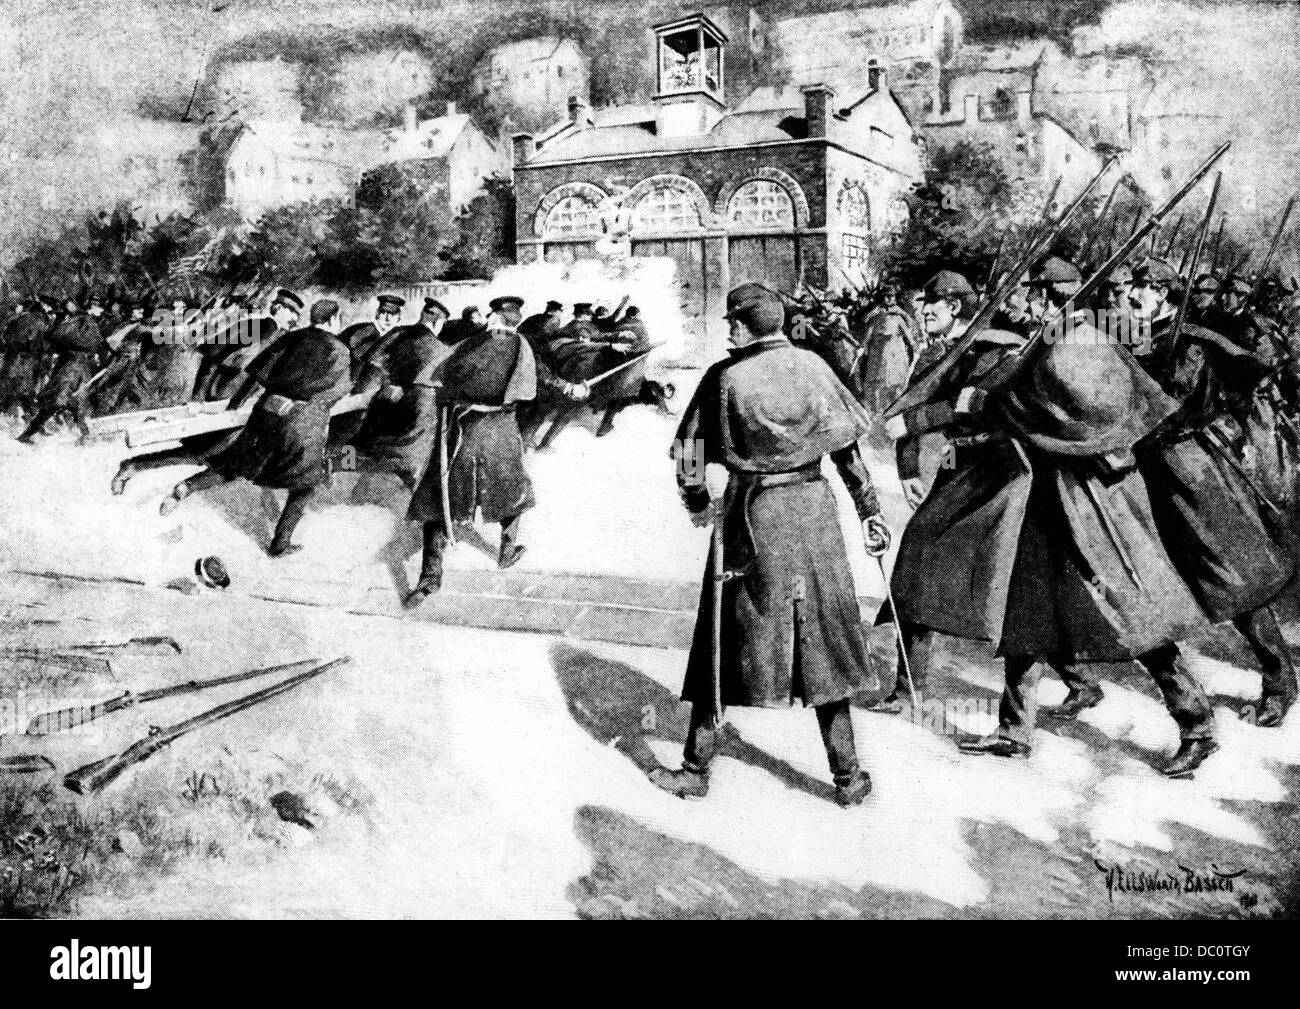 1859 COLONEL ROBERT E LEE'S MARINES BREAKING INTO ENGINE HOUSE HARPER'S FERRY WV CAPTURING JOHN BROWN & - Stock Image